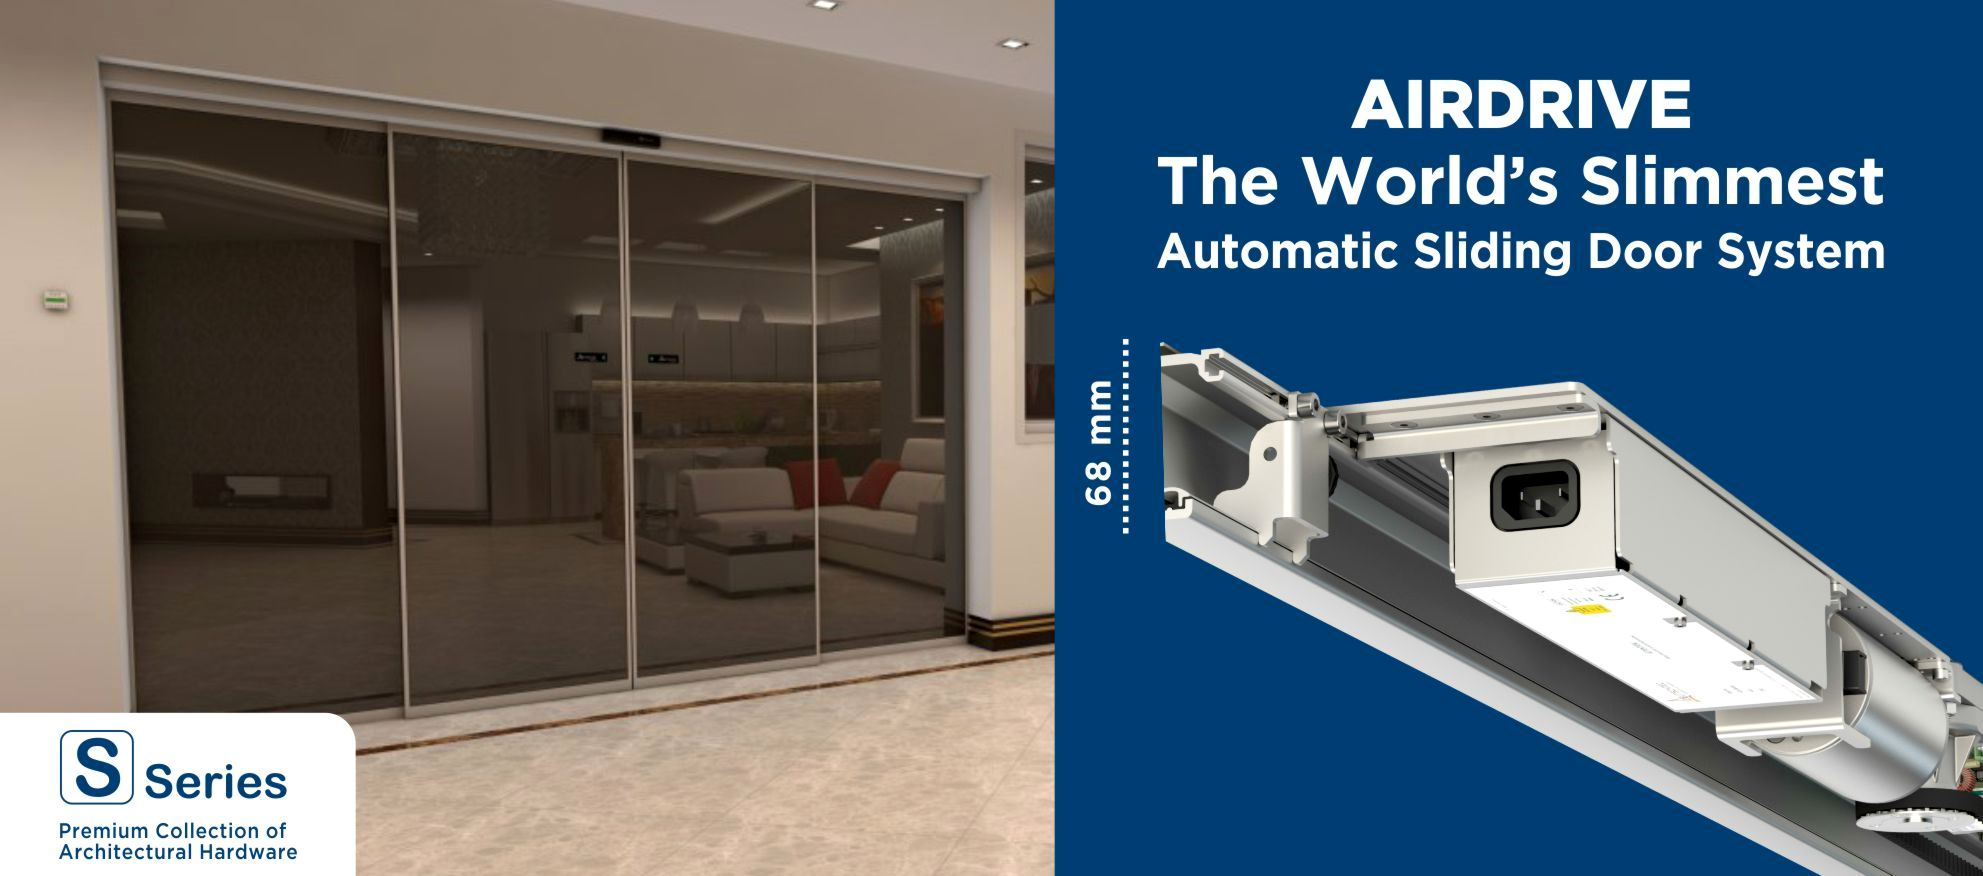 Worlds Slimmest Automatic Sliding Door System Launched By Ozone